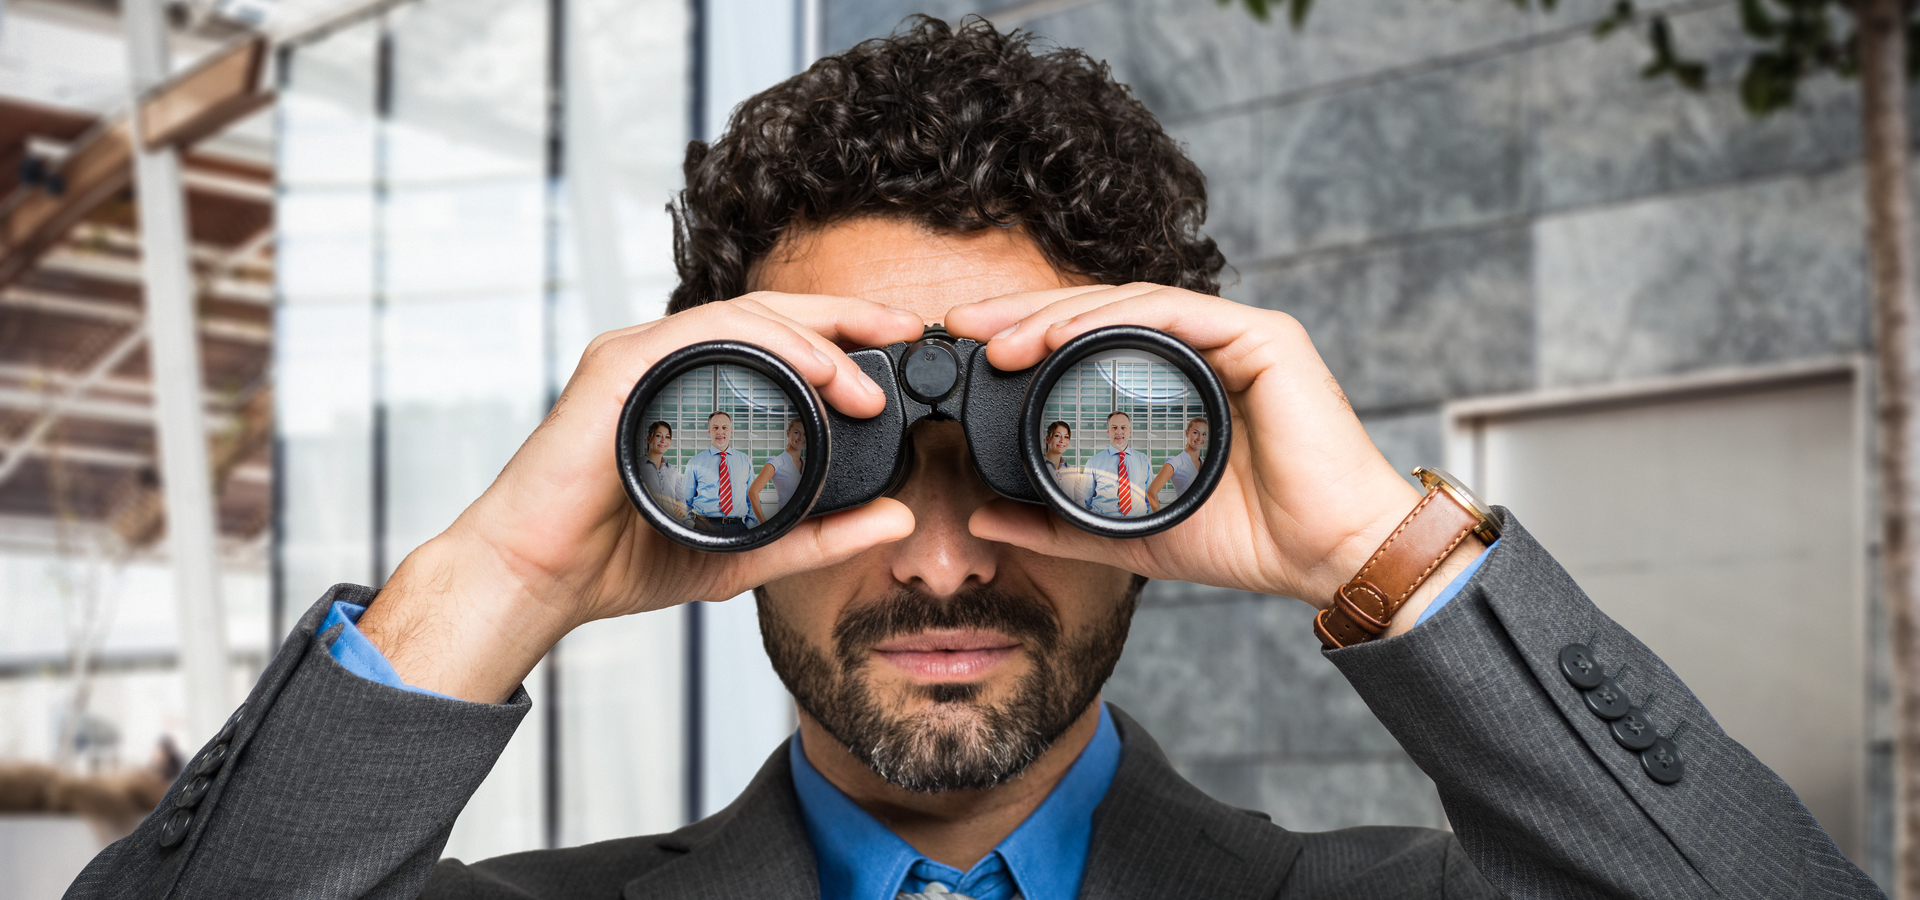 How to Turn Your Marketing Strategy into a Magnet for Your Skilled Labor Search